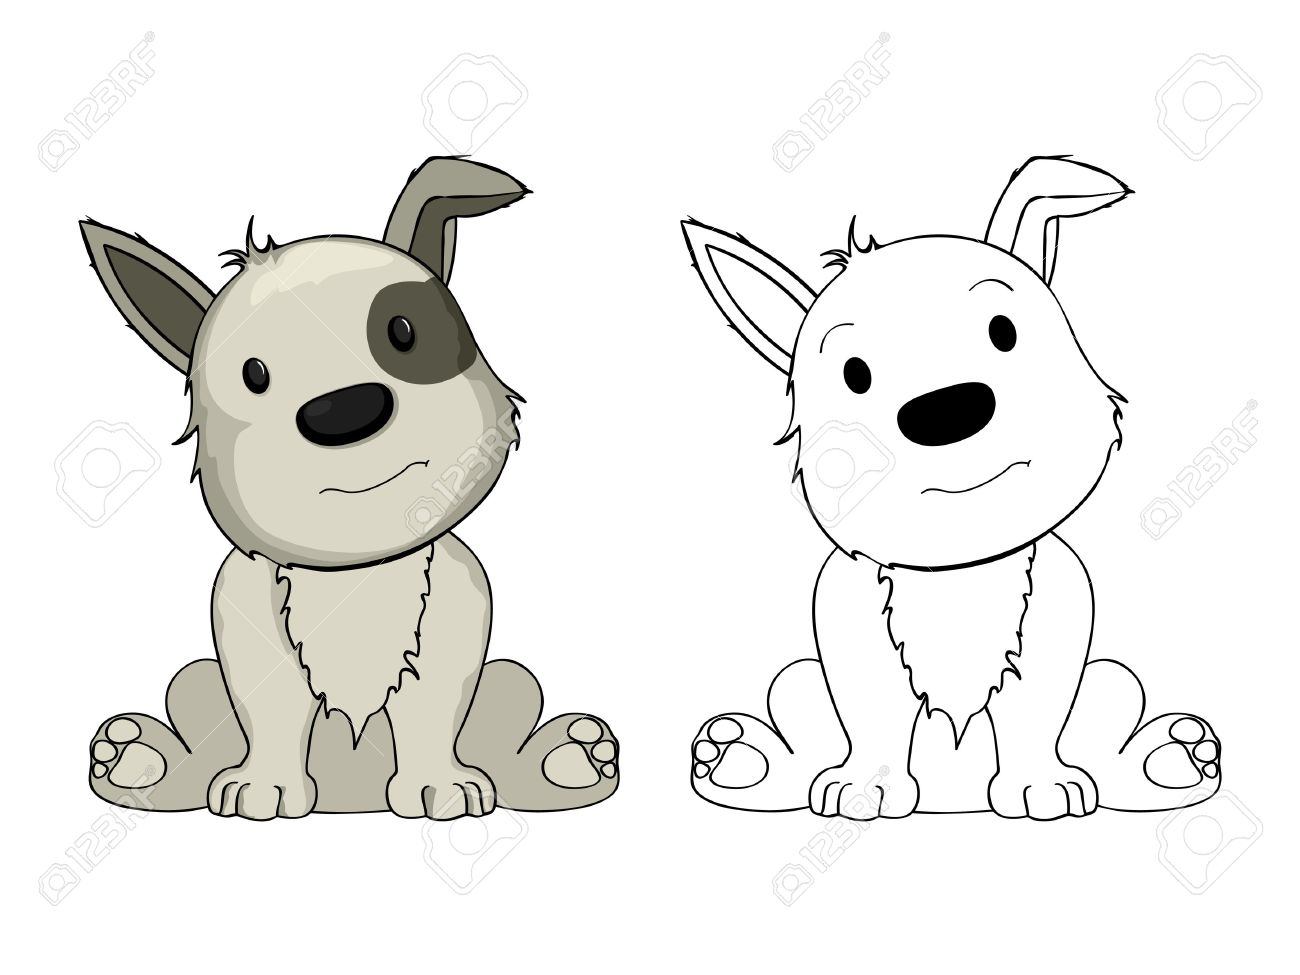 1300x975 Puppy Cartoon Drawing Cartoon Puppy Drawing Easy Puppy Drawings